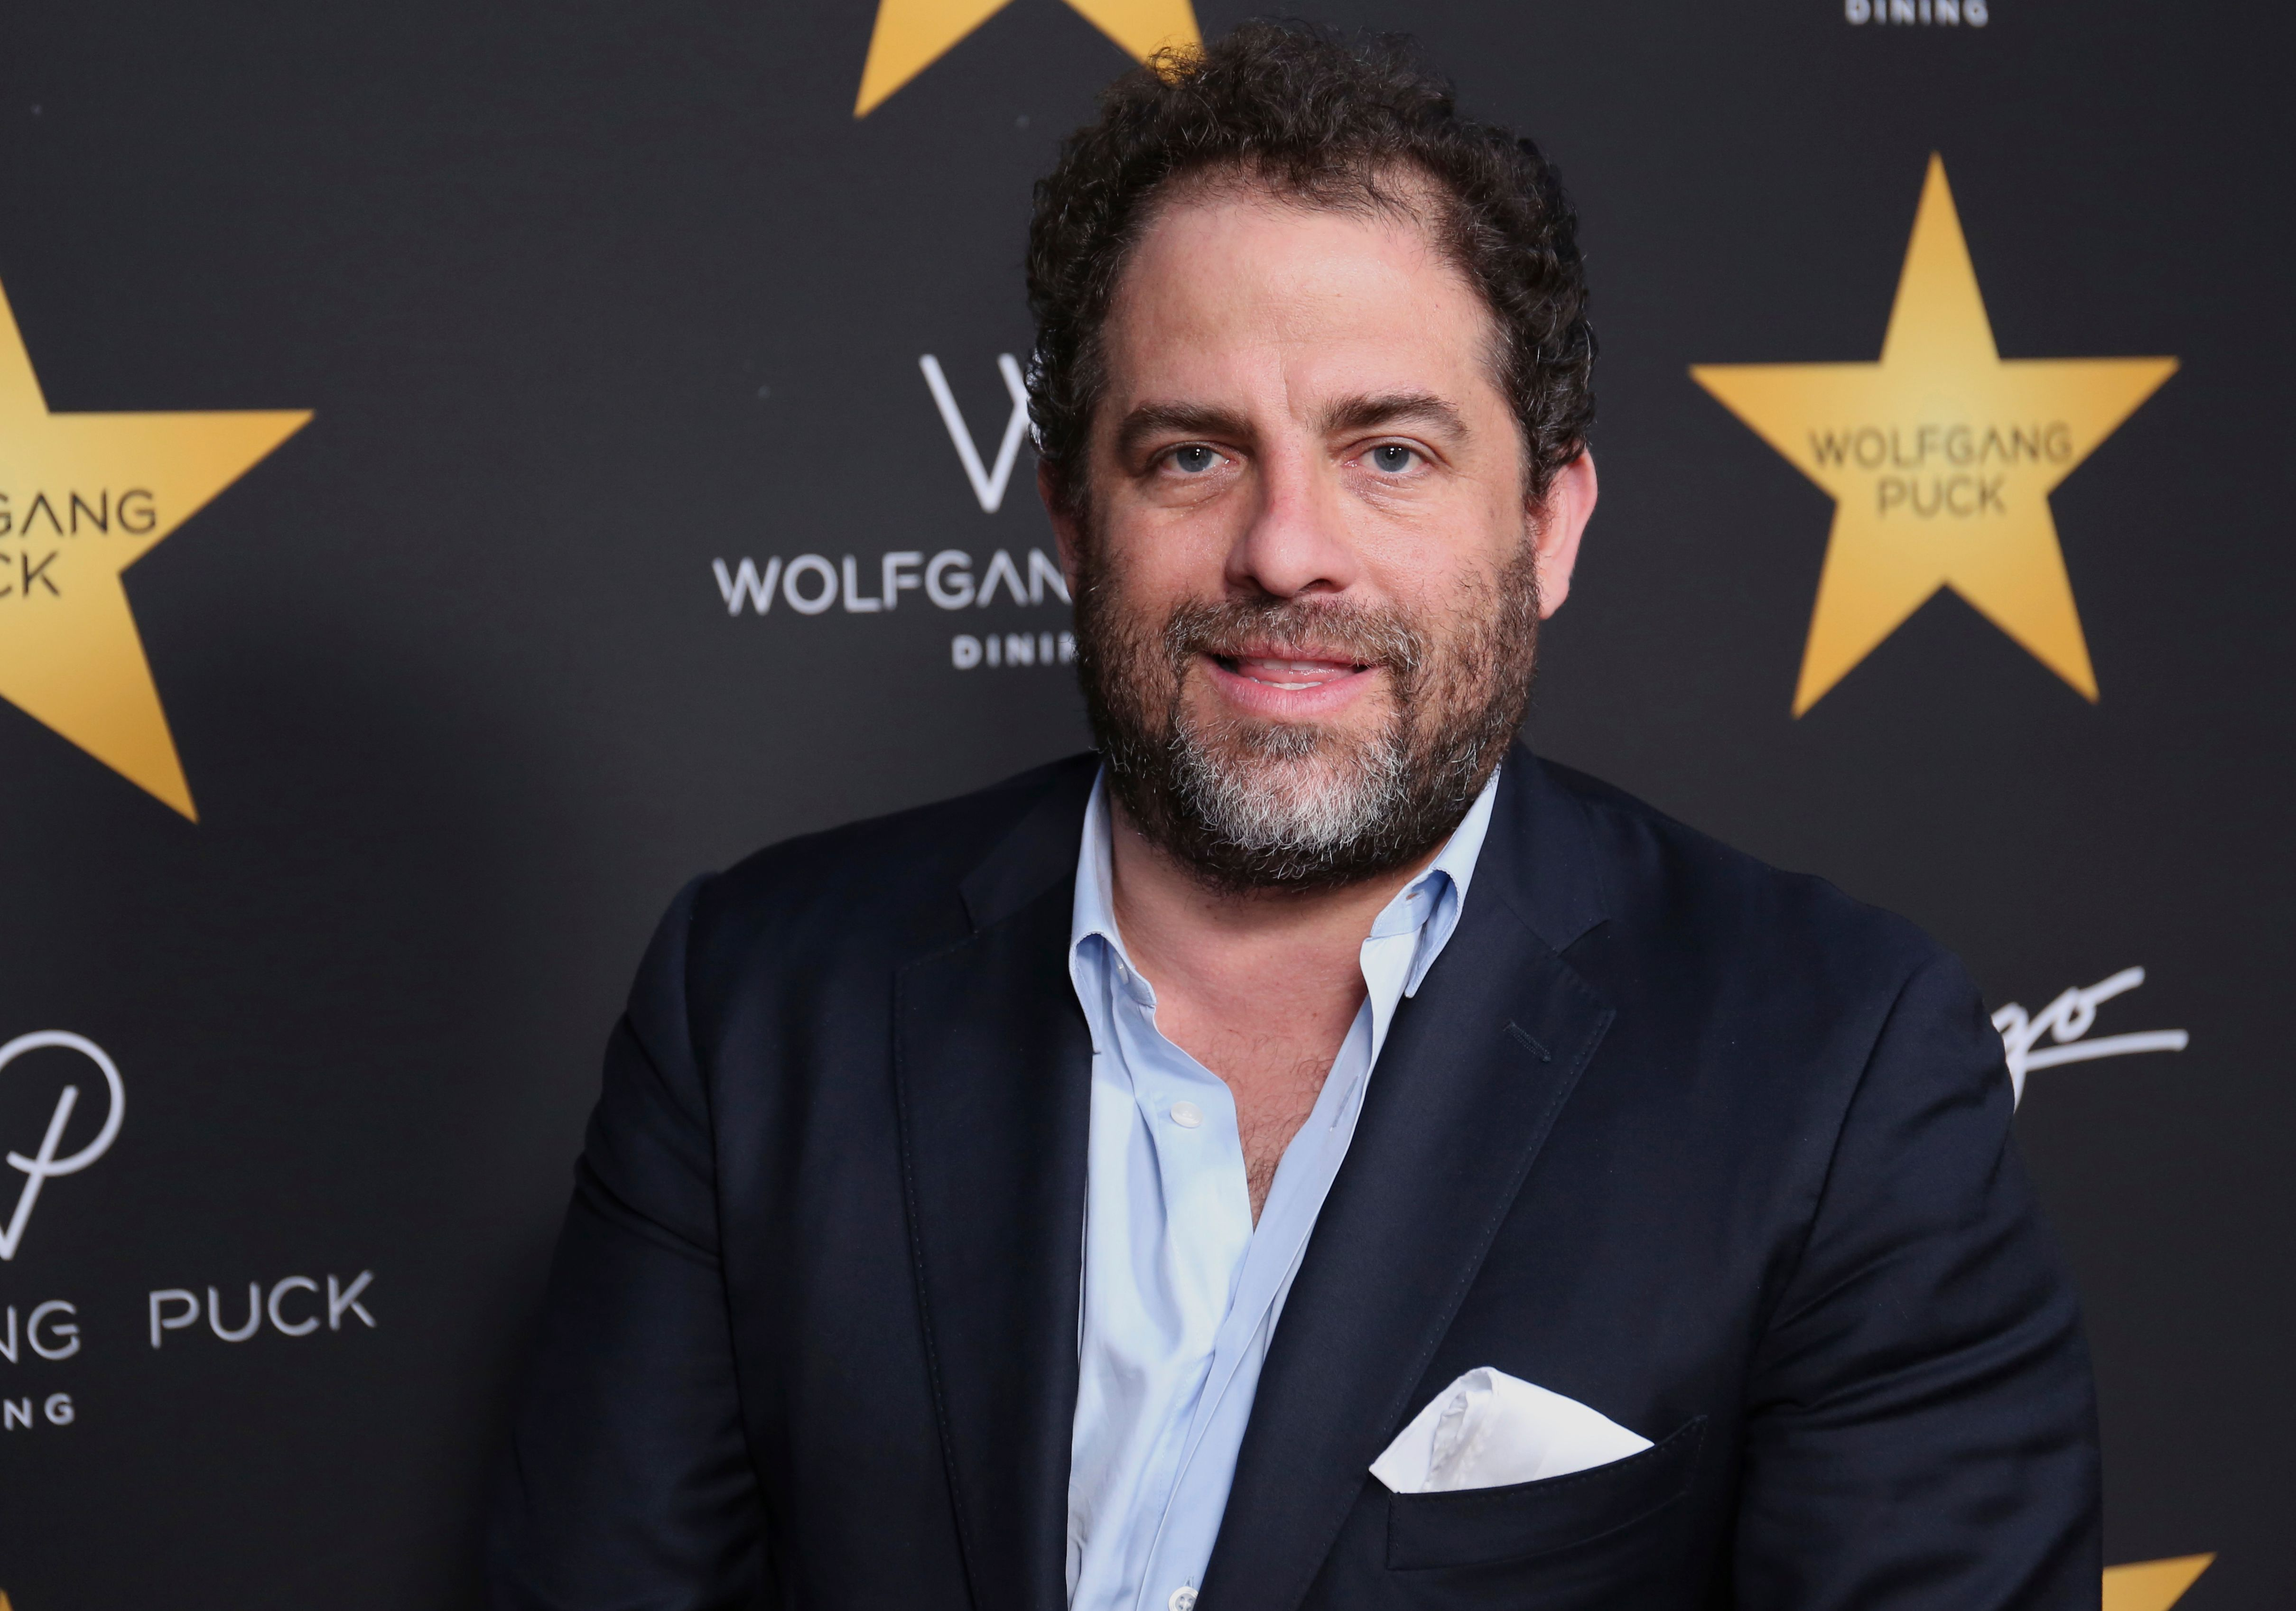 Brett Ratner: Director suing woman over rape claim; leaves Warner Bros.